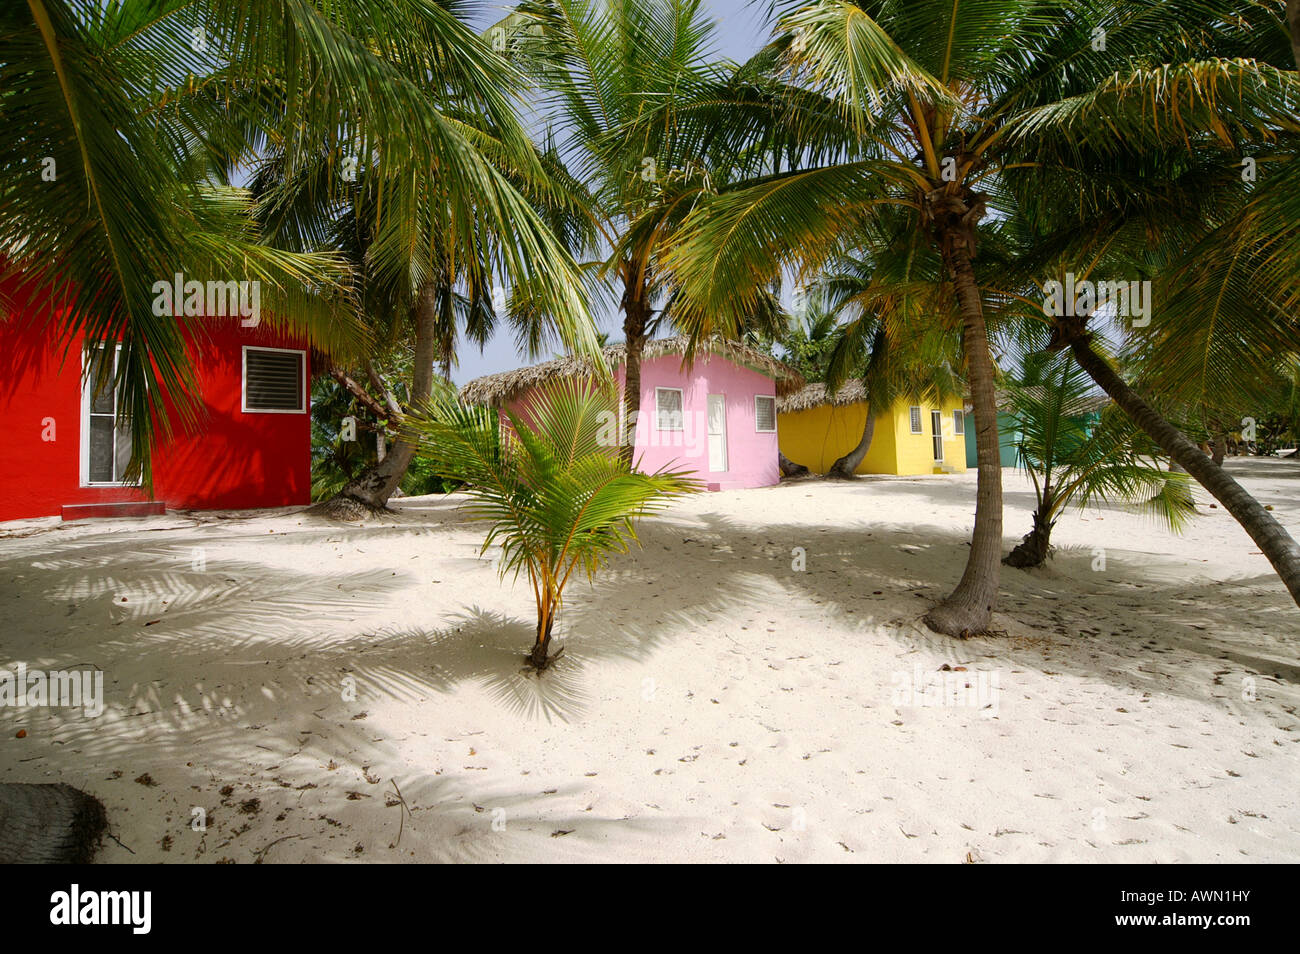 Colourful Caribbean guesthouses on the beach, Catalina Island, Dominican Republic, Caribbean, Americas - Stock Image